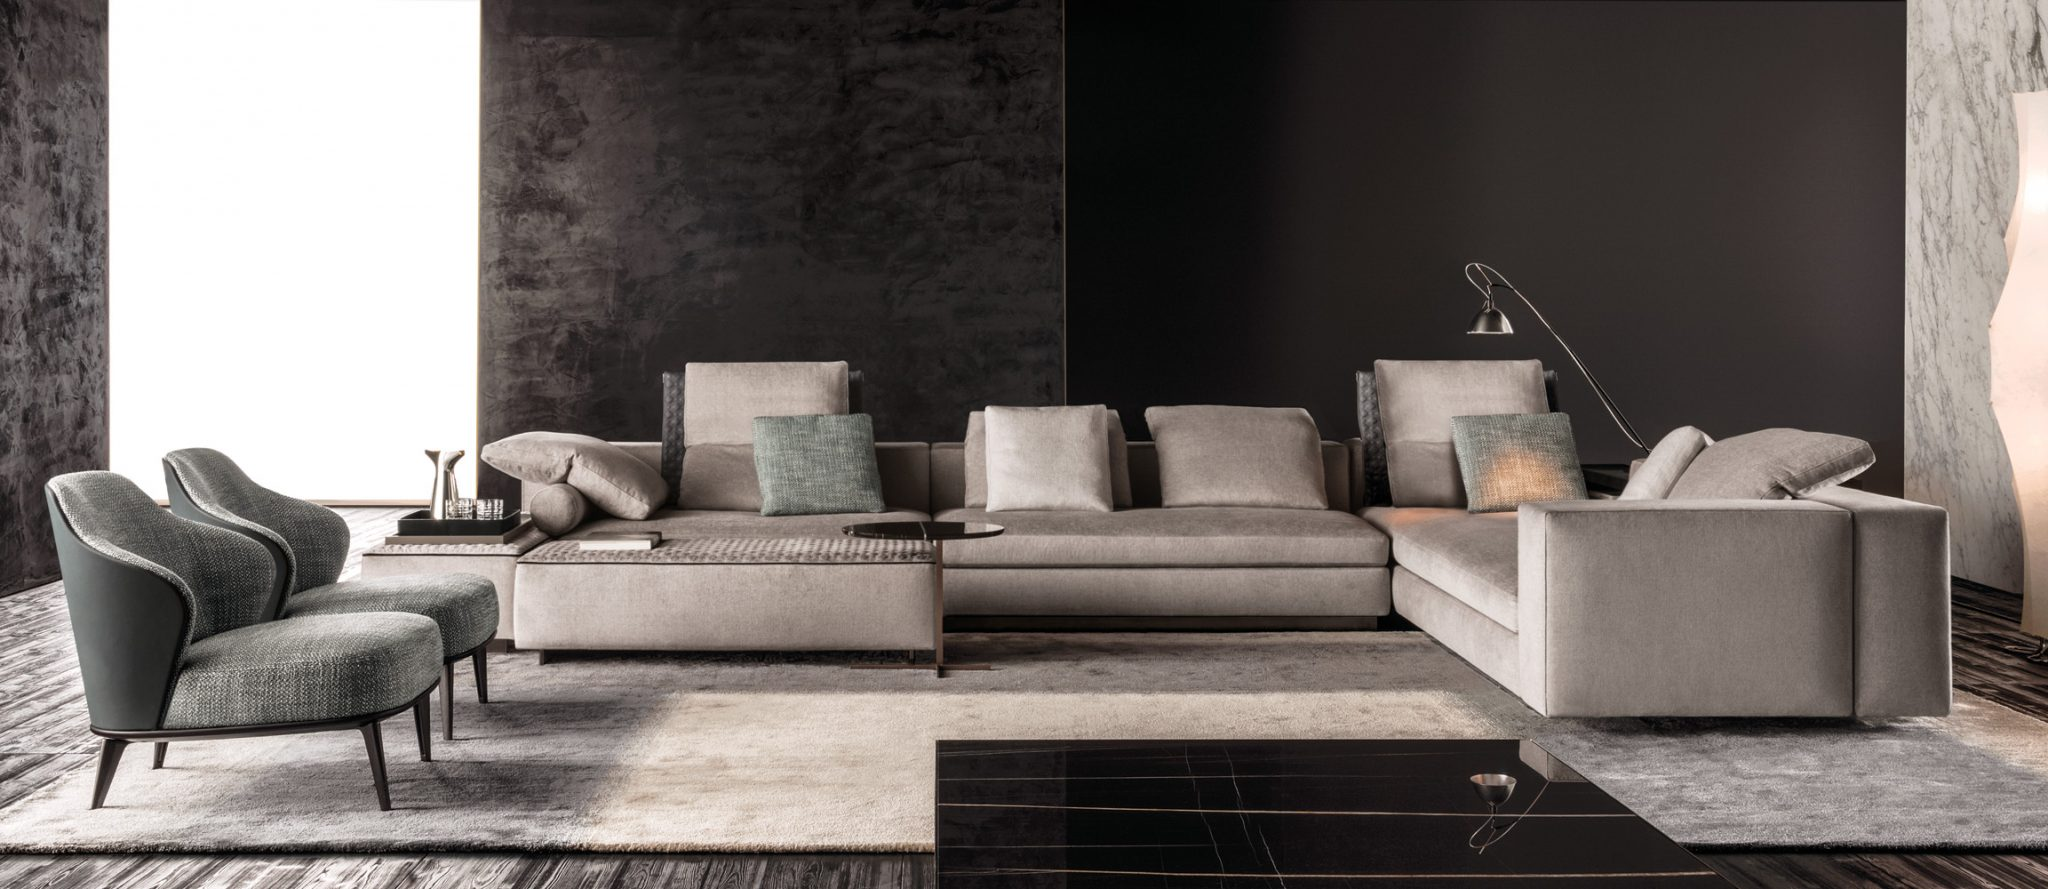 Natuzzi Sofa Test 5 Sofa Shapes Explained